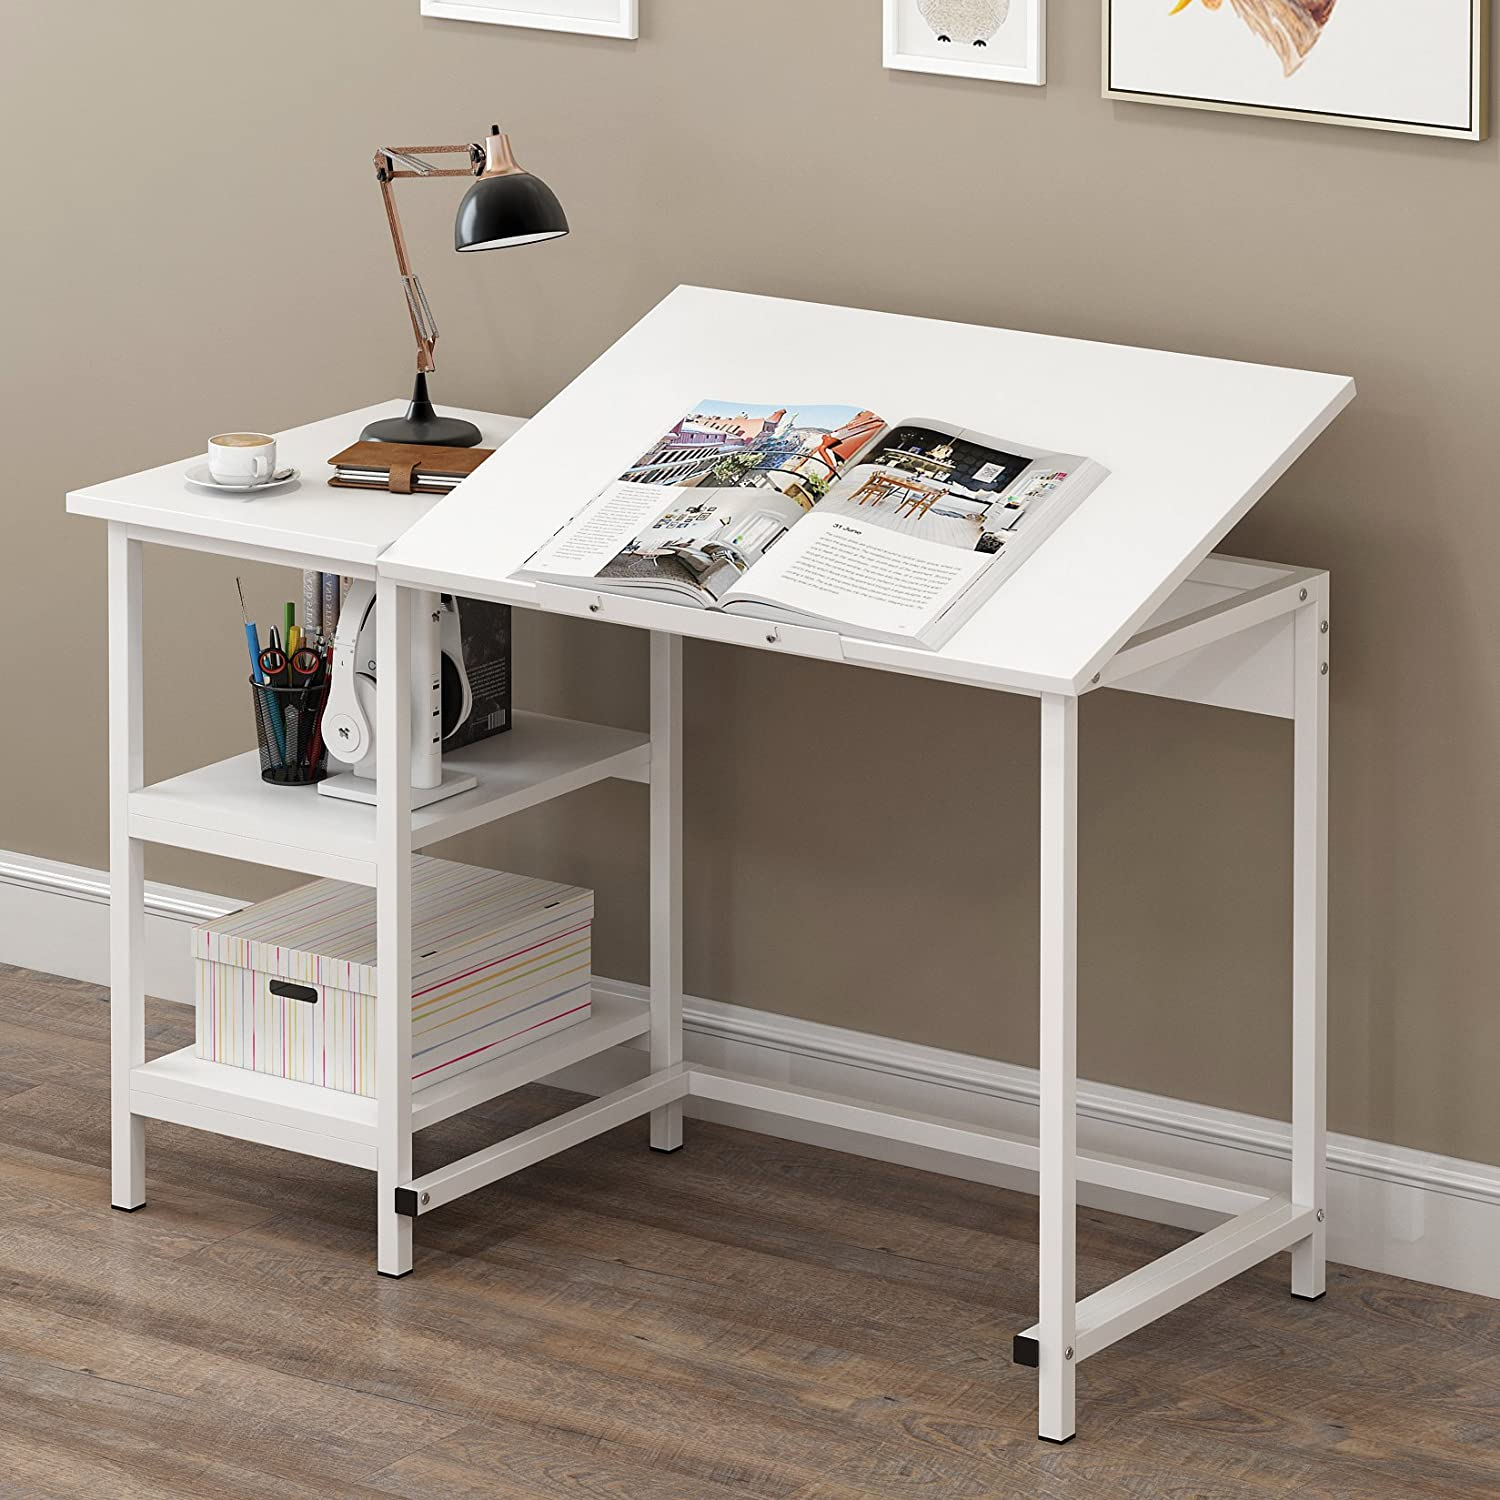 CherryTree Furniture Computer Desk Drafting Table with Shelves (Black) Cherry Tree Furniture